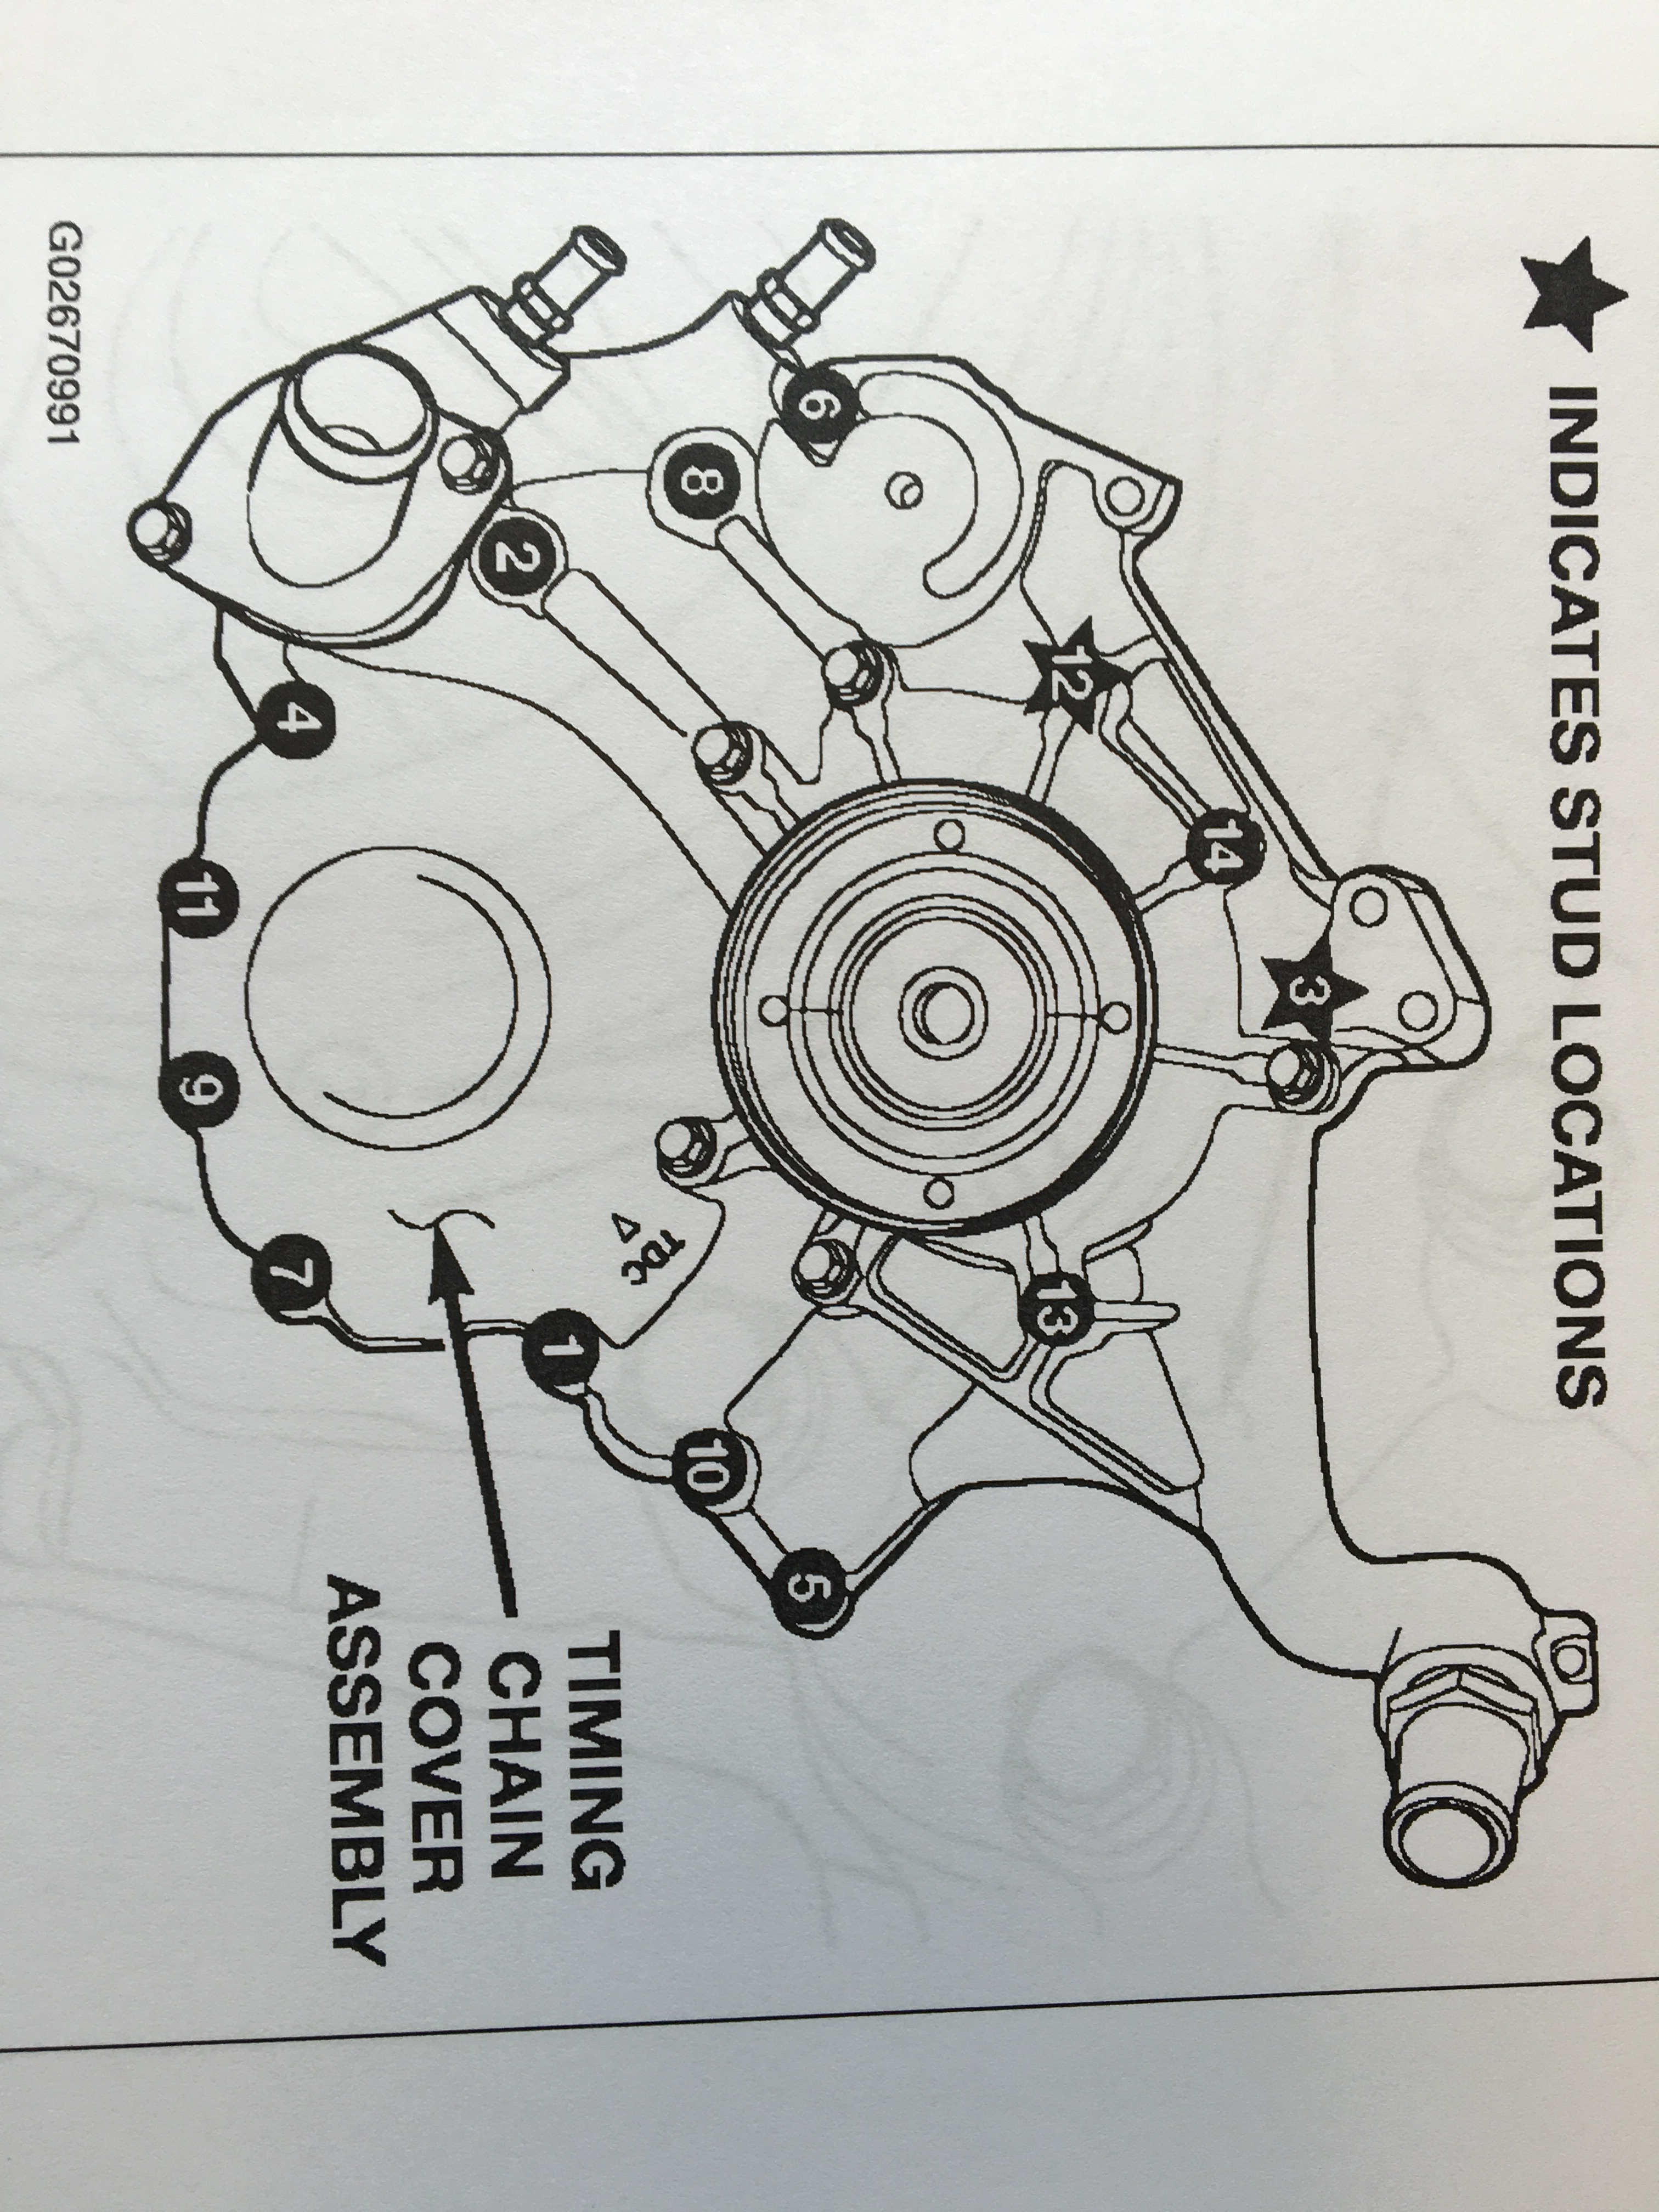 dodge 3.7l engine diagram how to replace a 3 7l or 4 7l timing chain s  and or components  replace a 3 7l or 4 7l timing chain